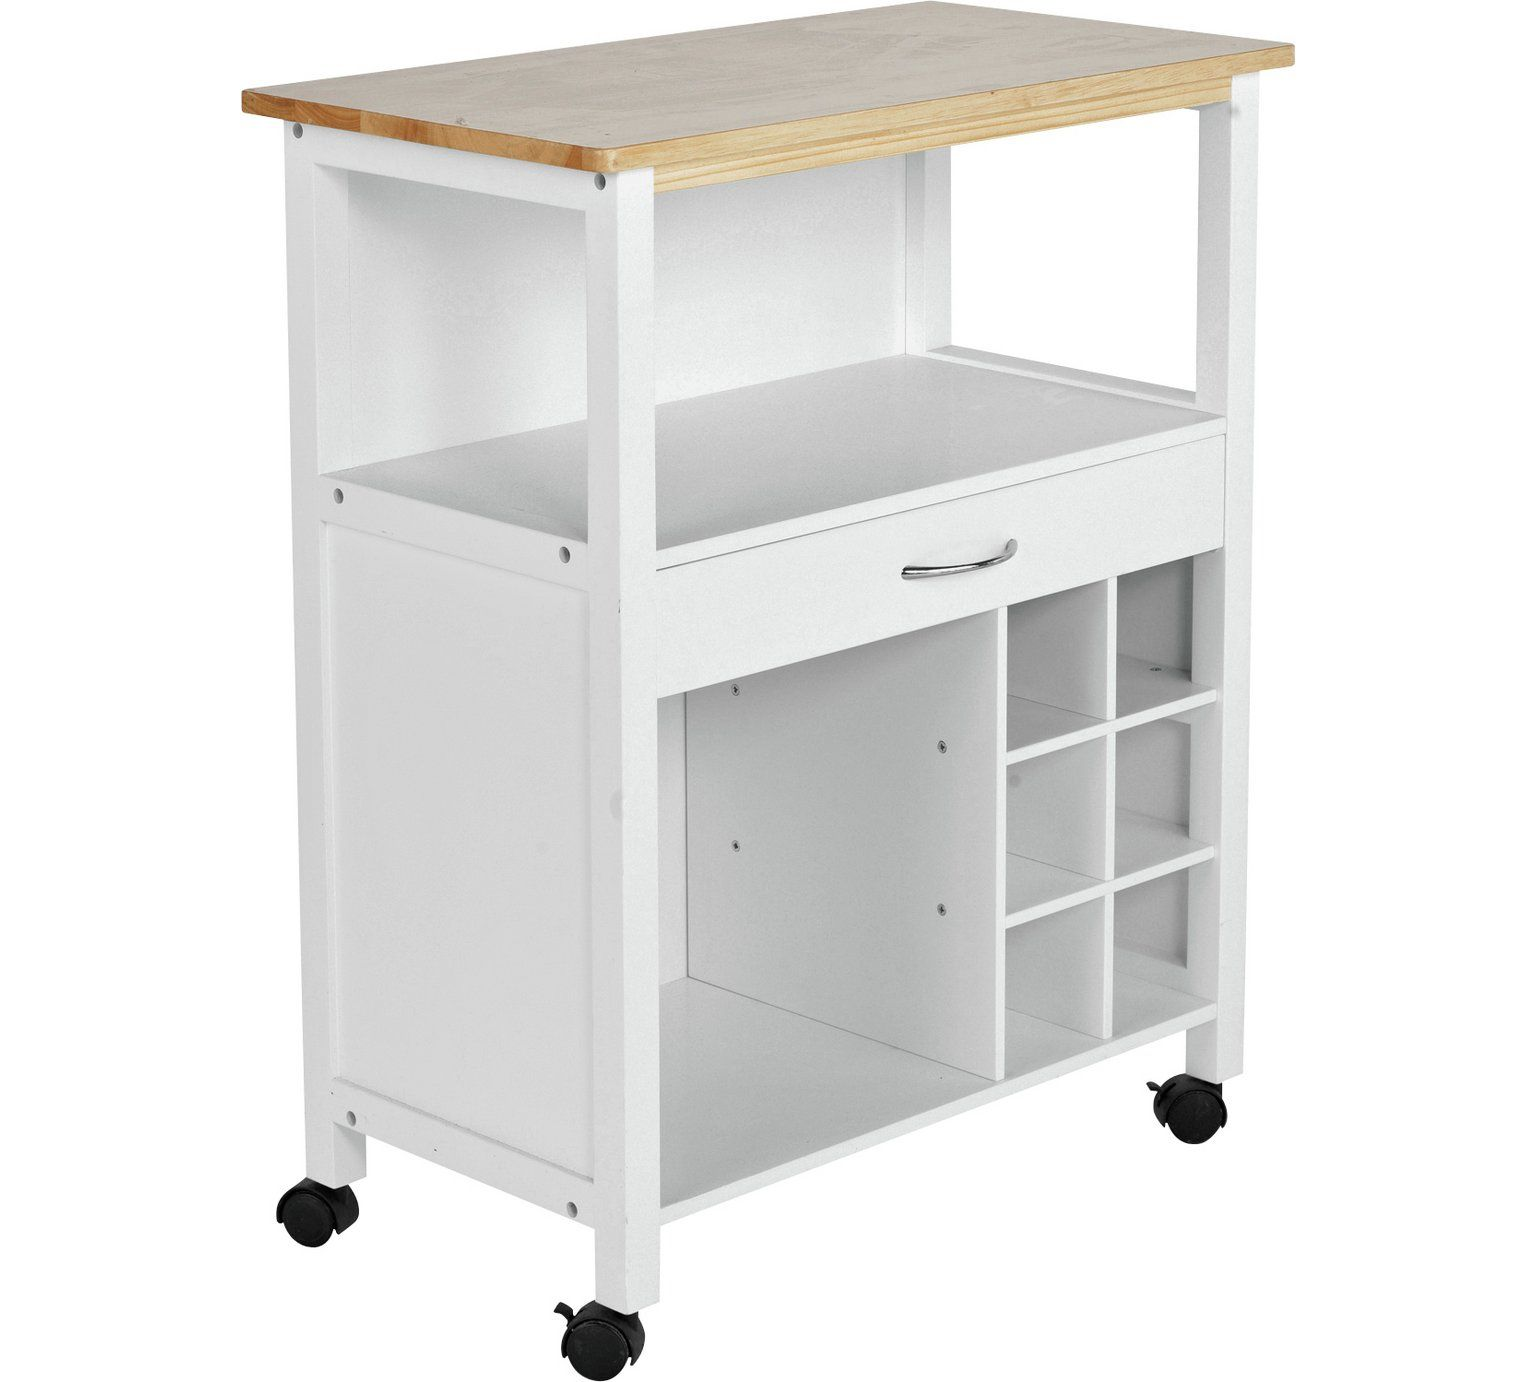 Buy HOME Kitchen Trolley with Wine Rack at Argos visit